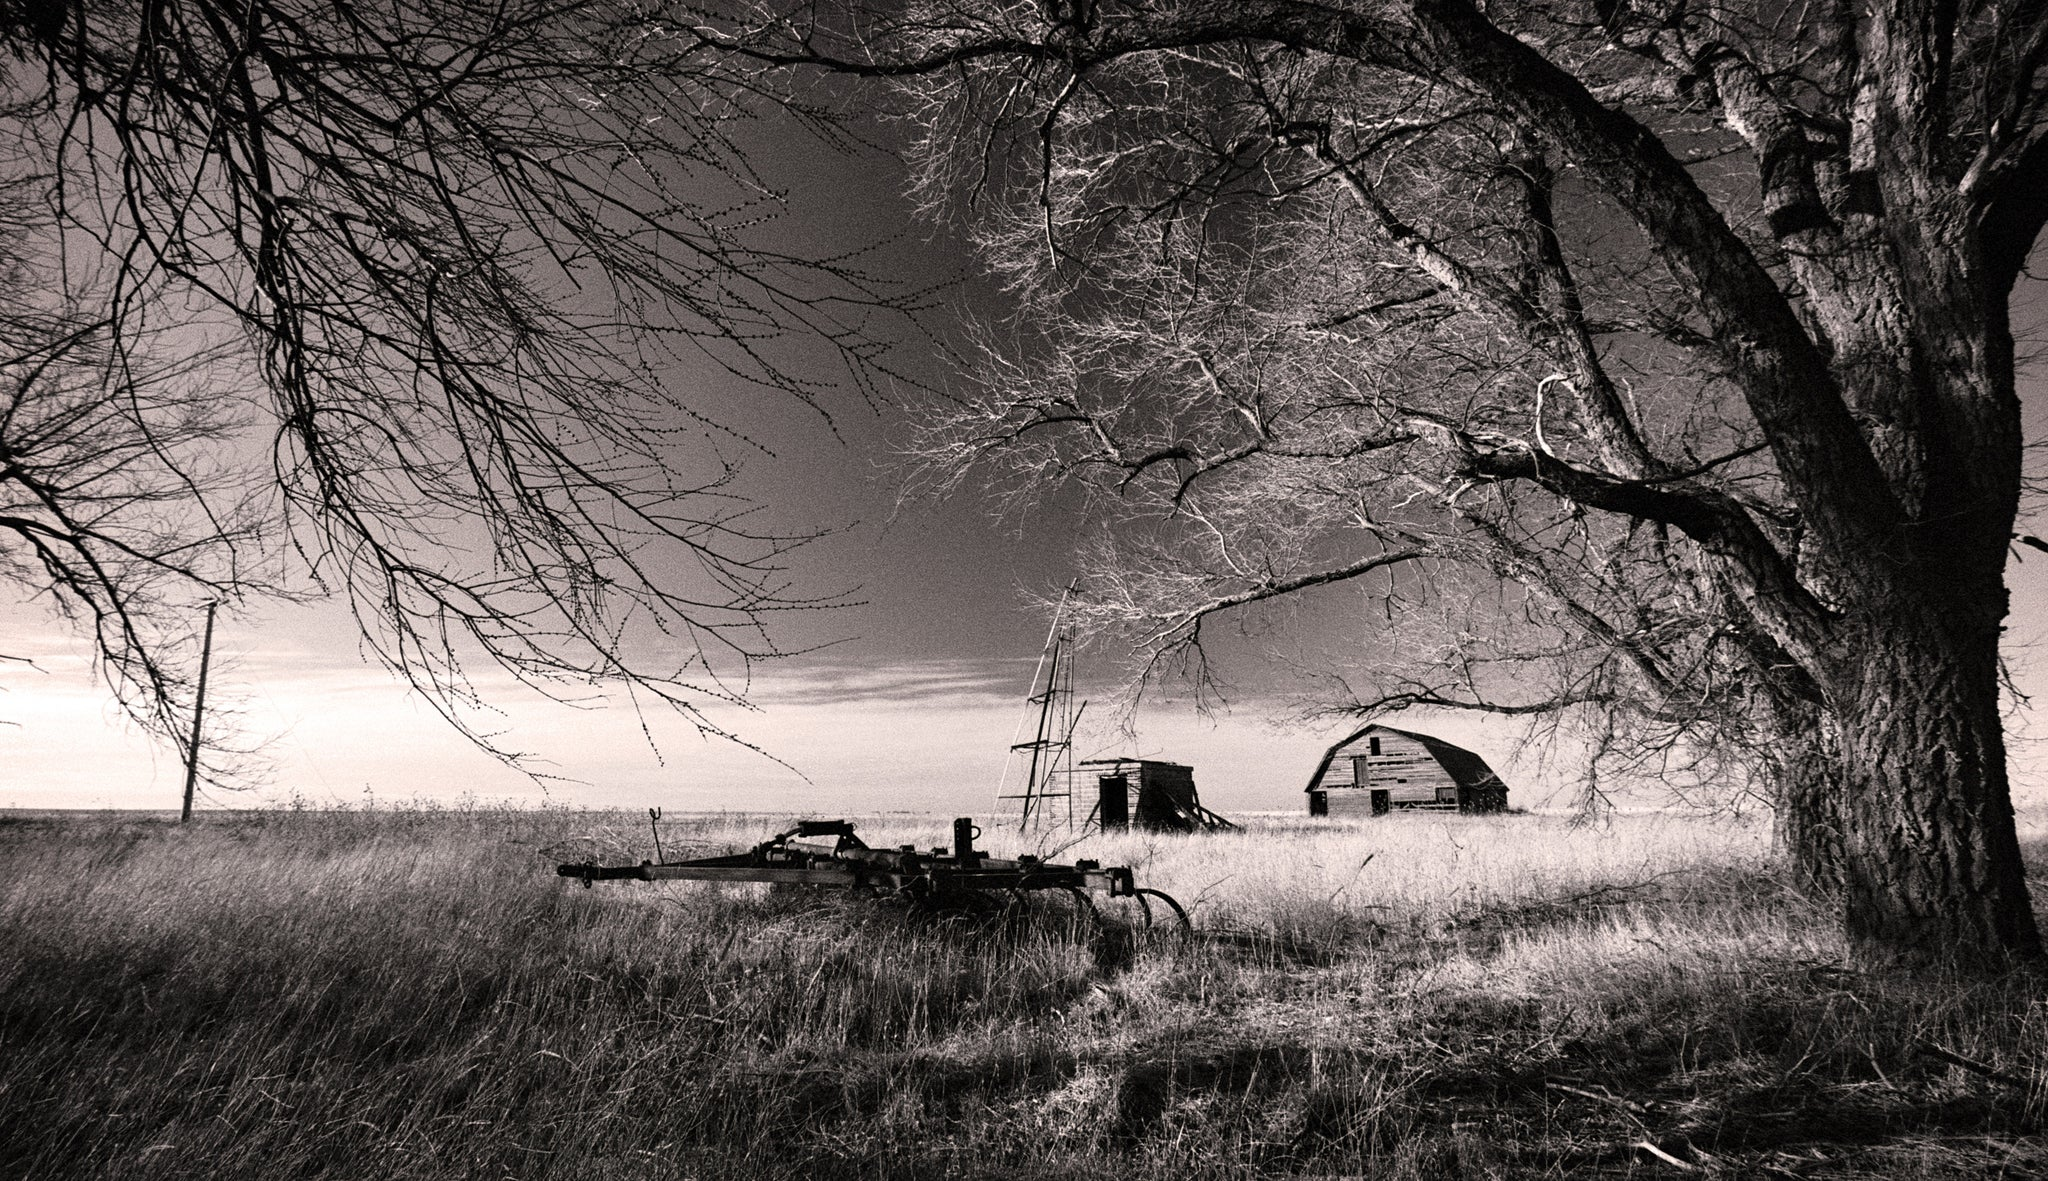 Abandoned farm oklahoma countryside black and white photograph